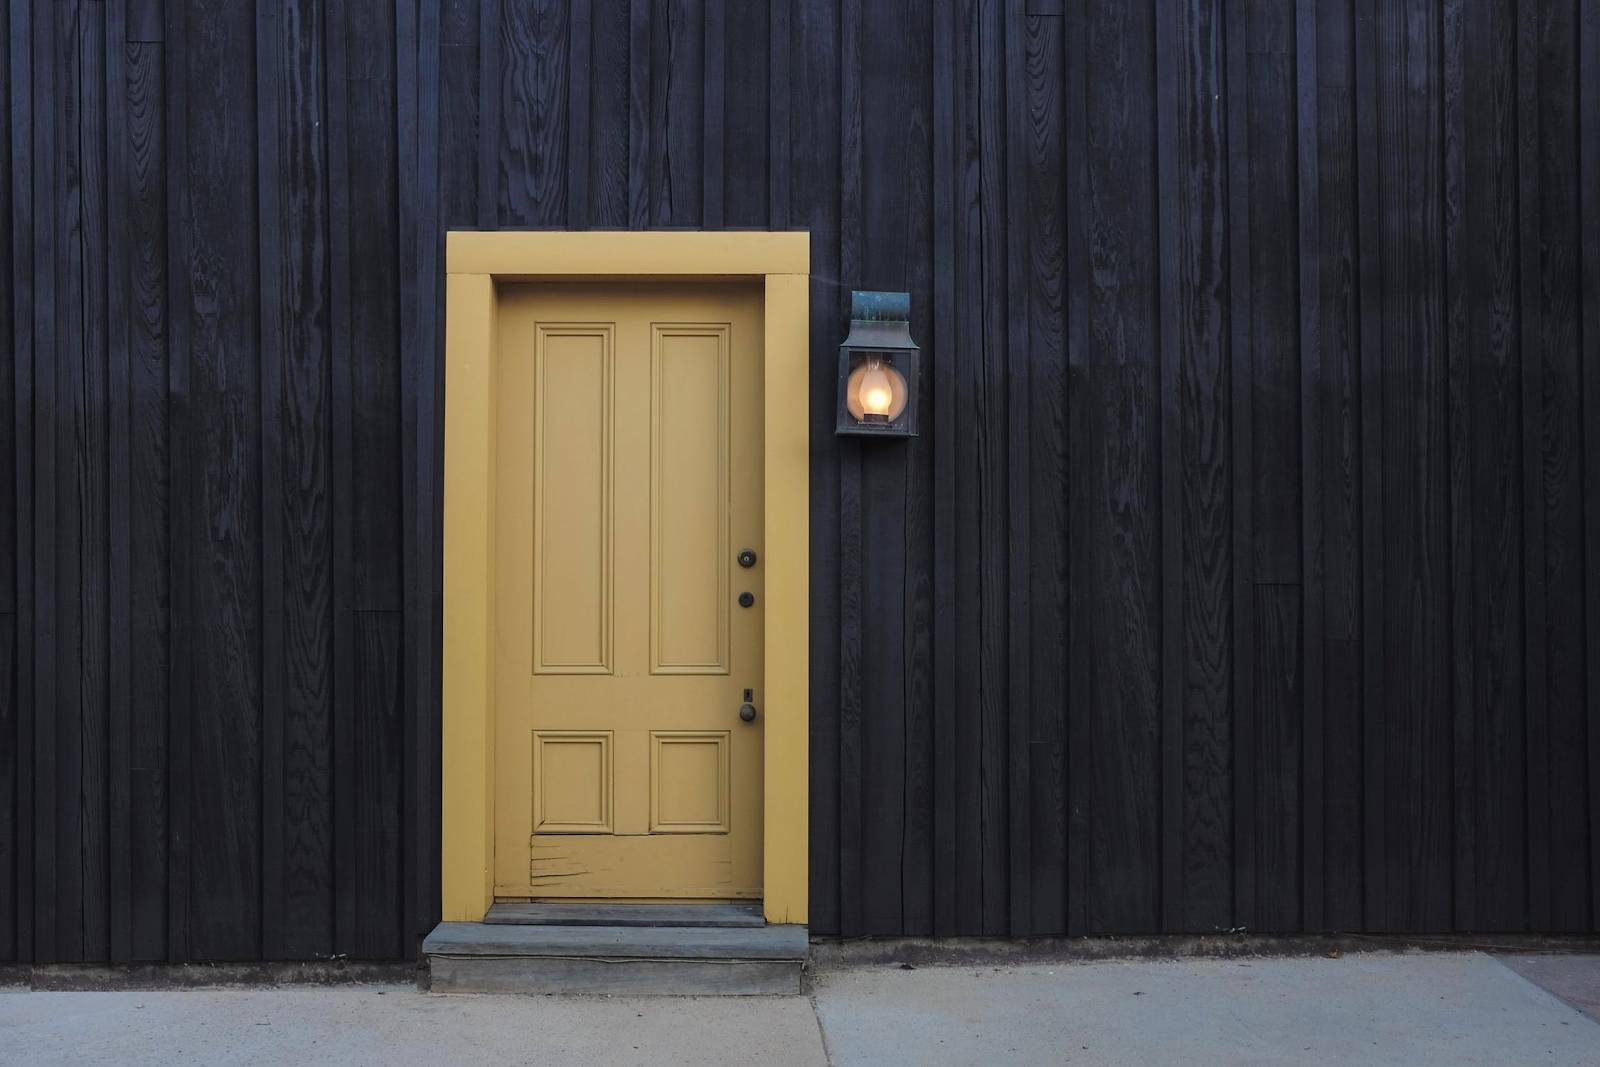 An image showing a painted front door project.